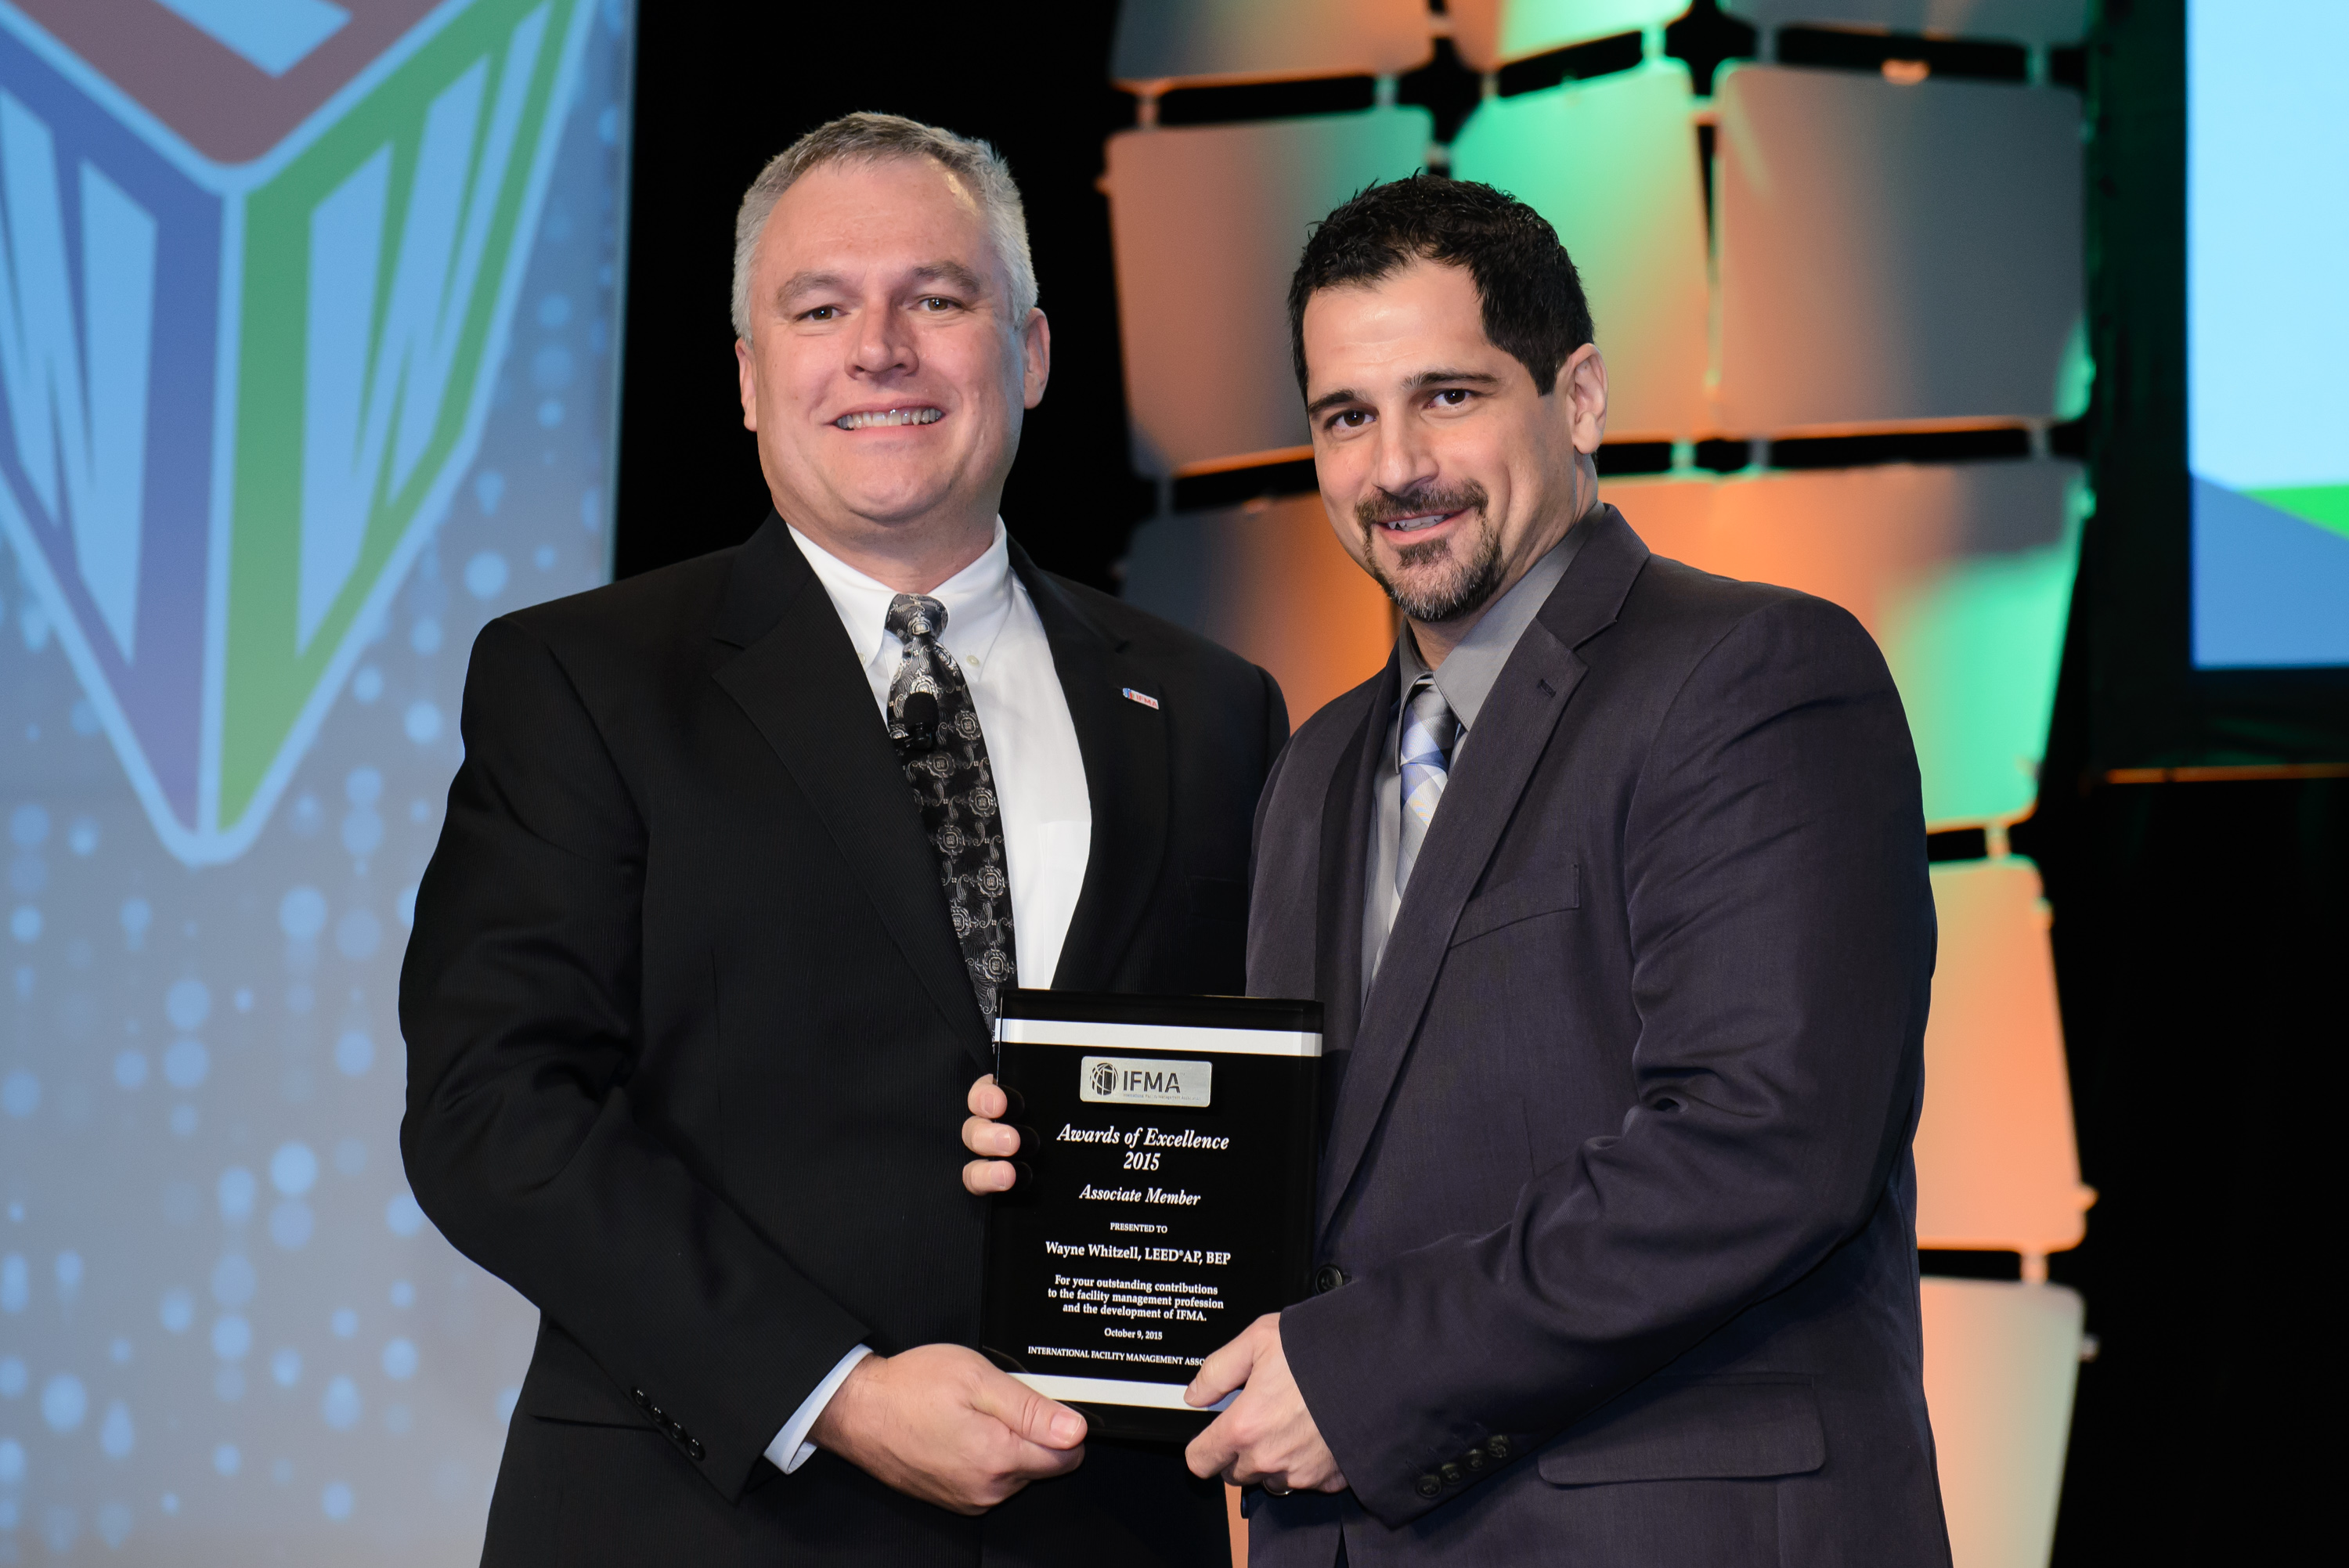 Wayne Whitzell, LEED AO, BEP receives Associate Member Award